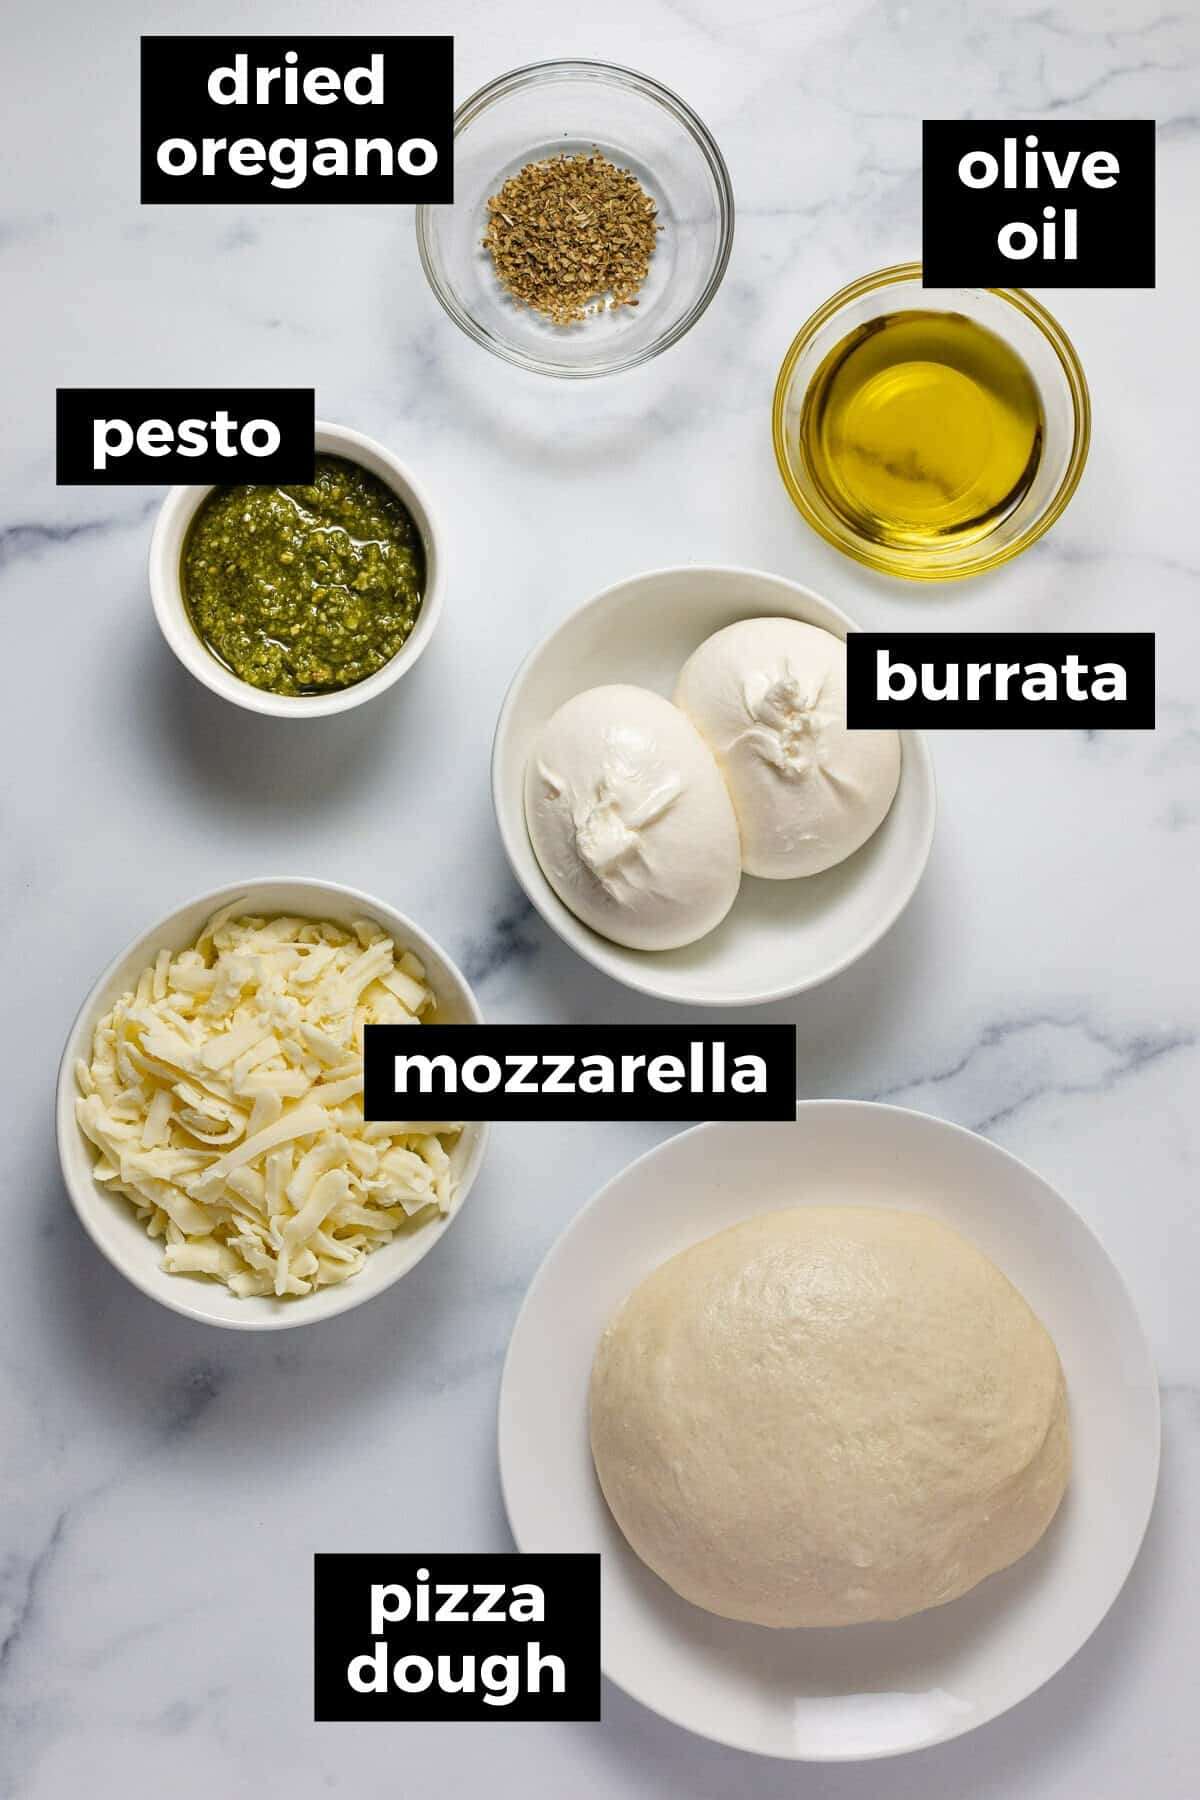 White marble counter top with bowls of ingredients to make burrata arugula pizza